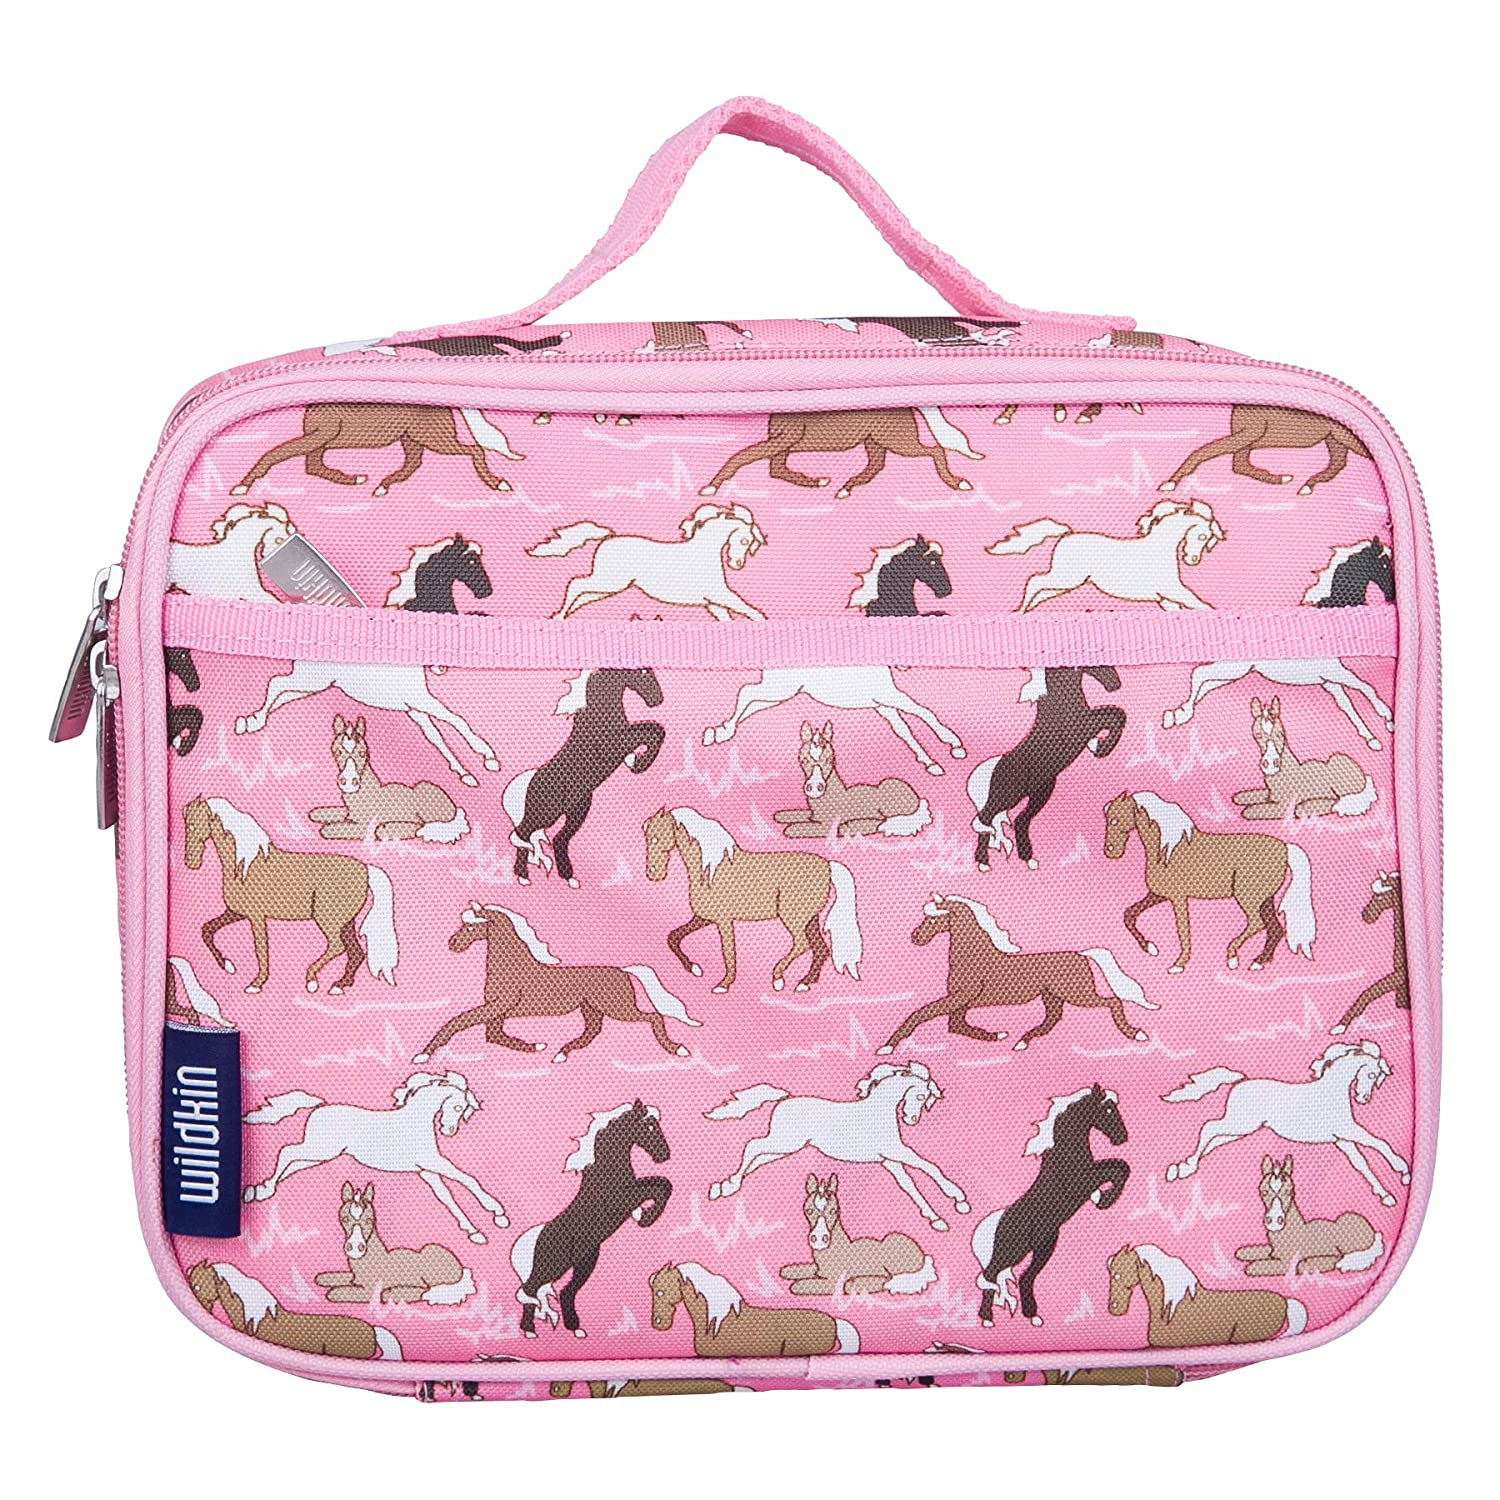 Wildkin Lunch Box Moisture Resistant and Easy to Clean with Extras for Quick and Simple Organization Olive Kids Design Sweet Dreams Perfect for Kids or On-The-Go Parents Insulated Ages 3+